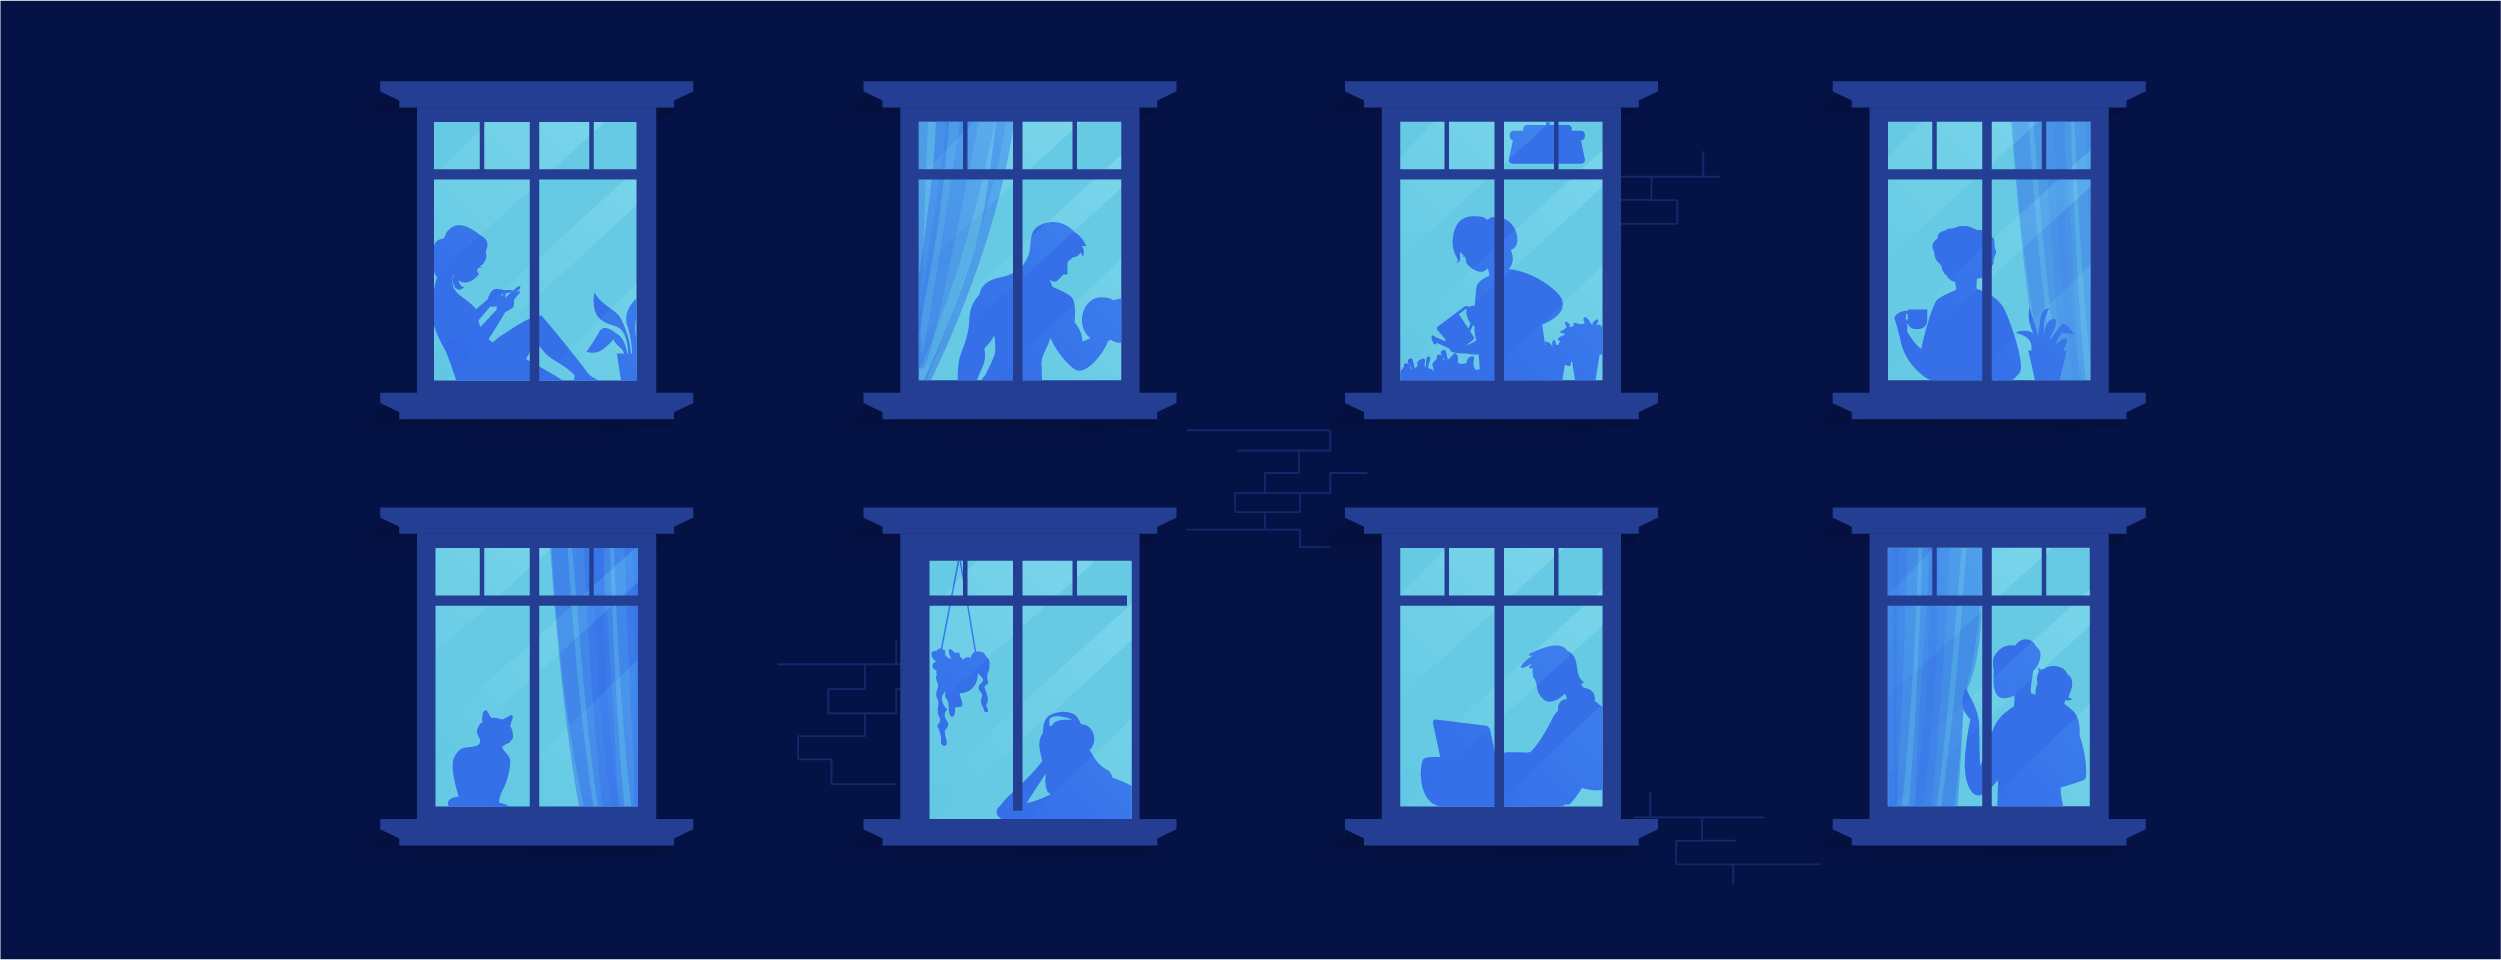 Illustration windows of an apartment with silhouettes of tenants